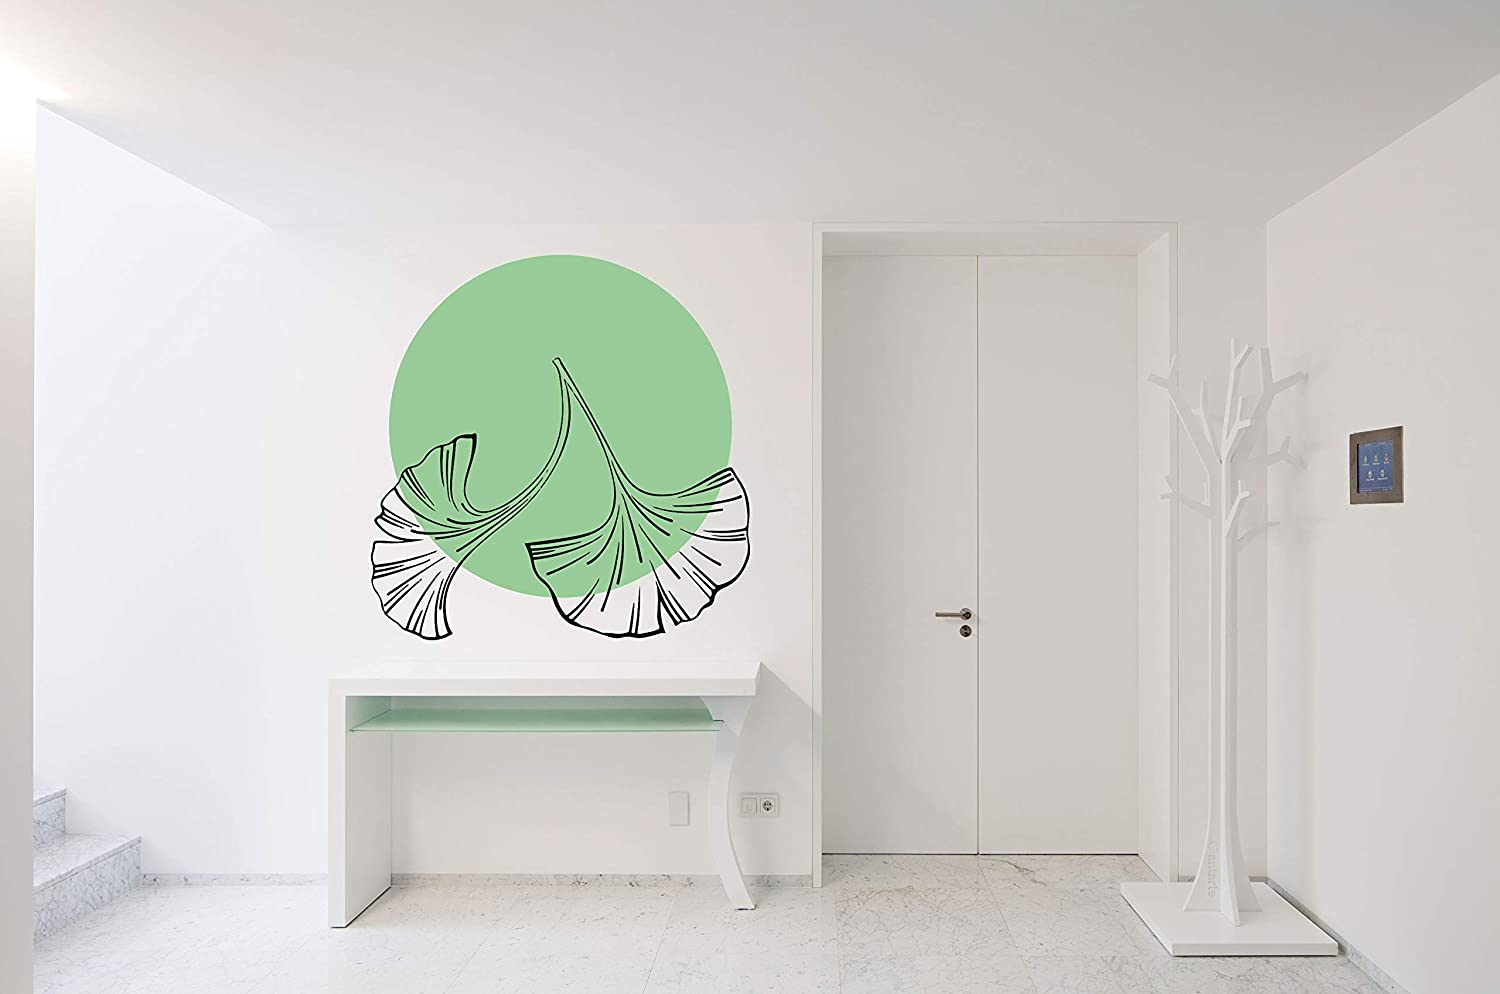 Ginkgo Biloba Tulsa Mall Leaf Plant Aesthetic Room Vinyl Sticker M Wall Inventory cleanup selling sale Car